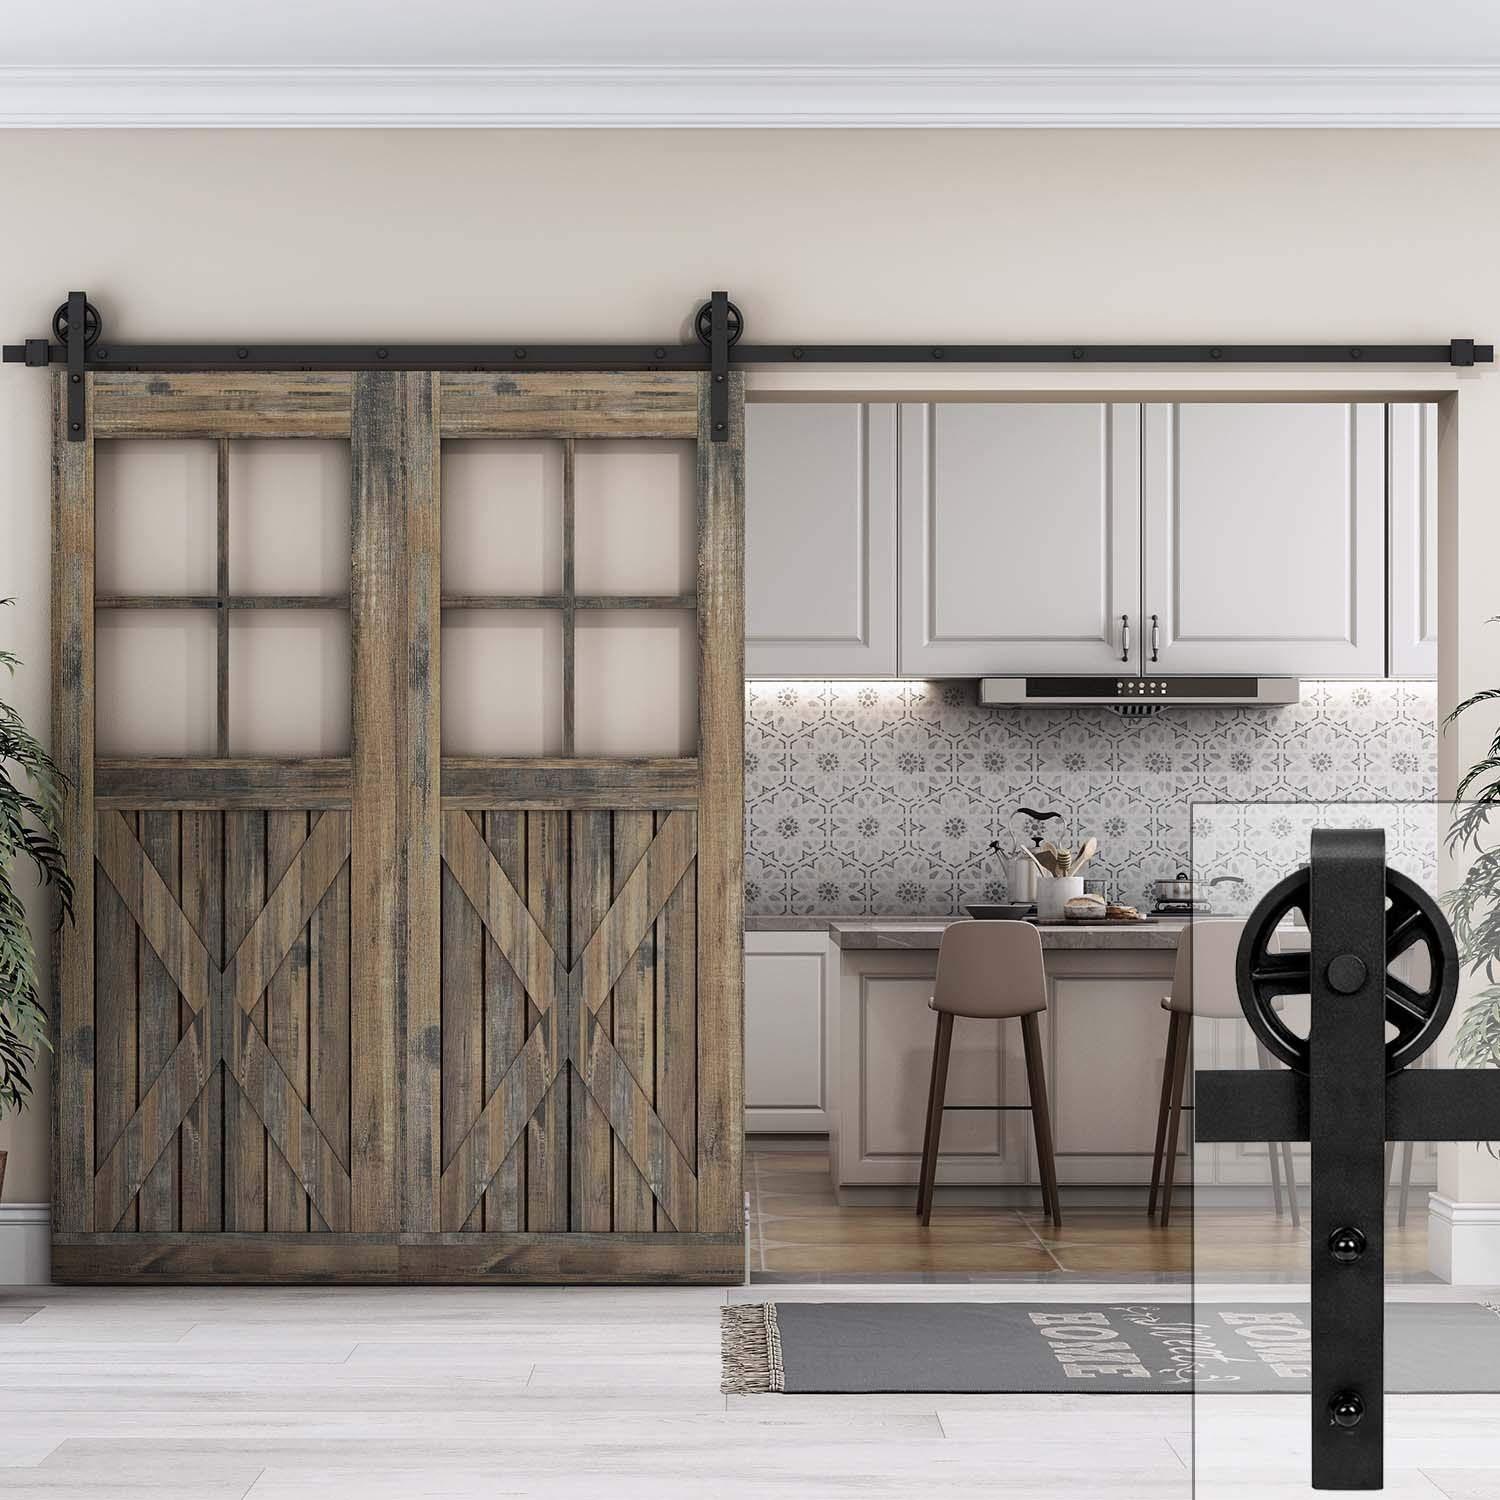 Heavy Duty Big Wheel Sliding Barn Door Hardware Track Kit Sliding Barn Door Hardware Door Kits Sliding Barn Door